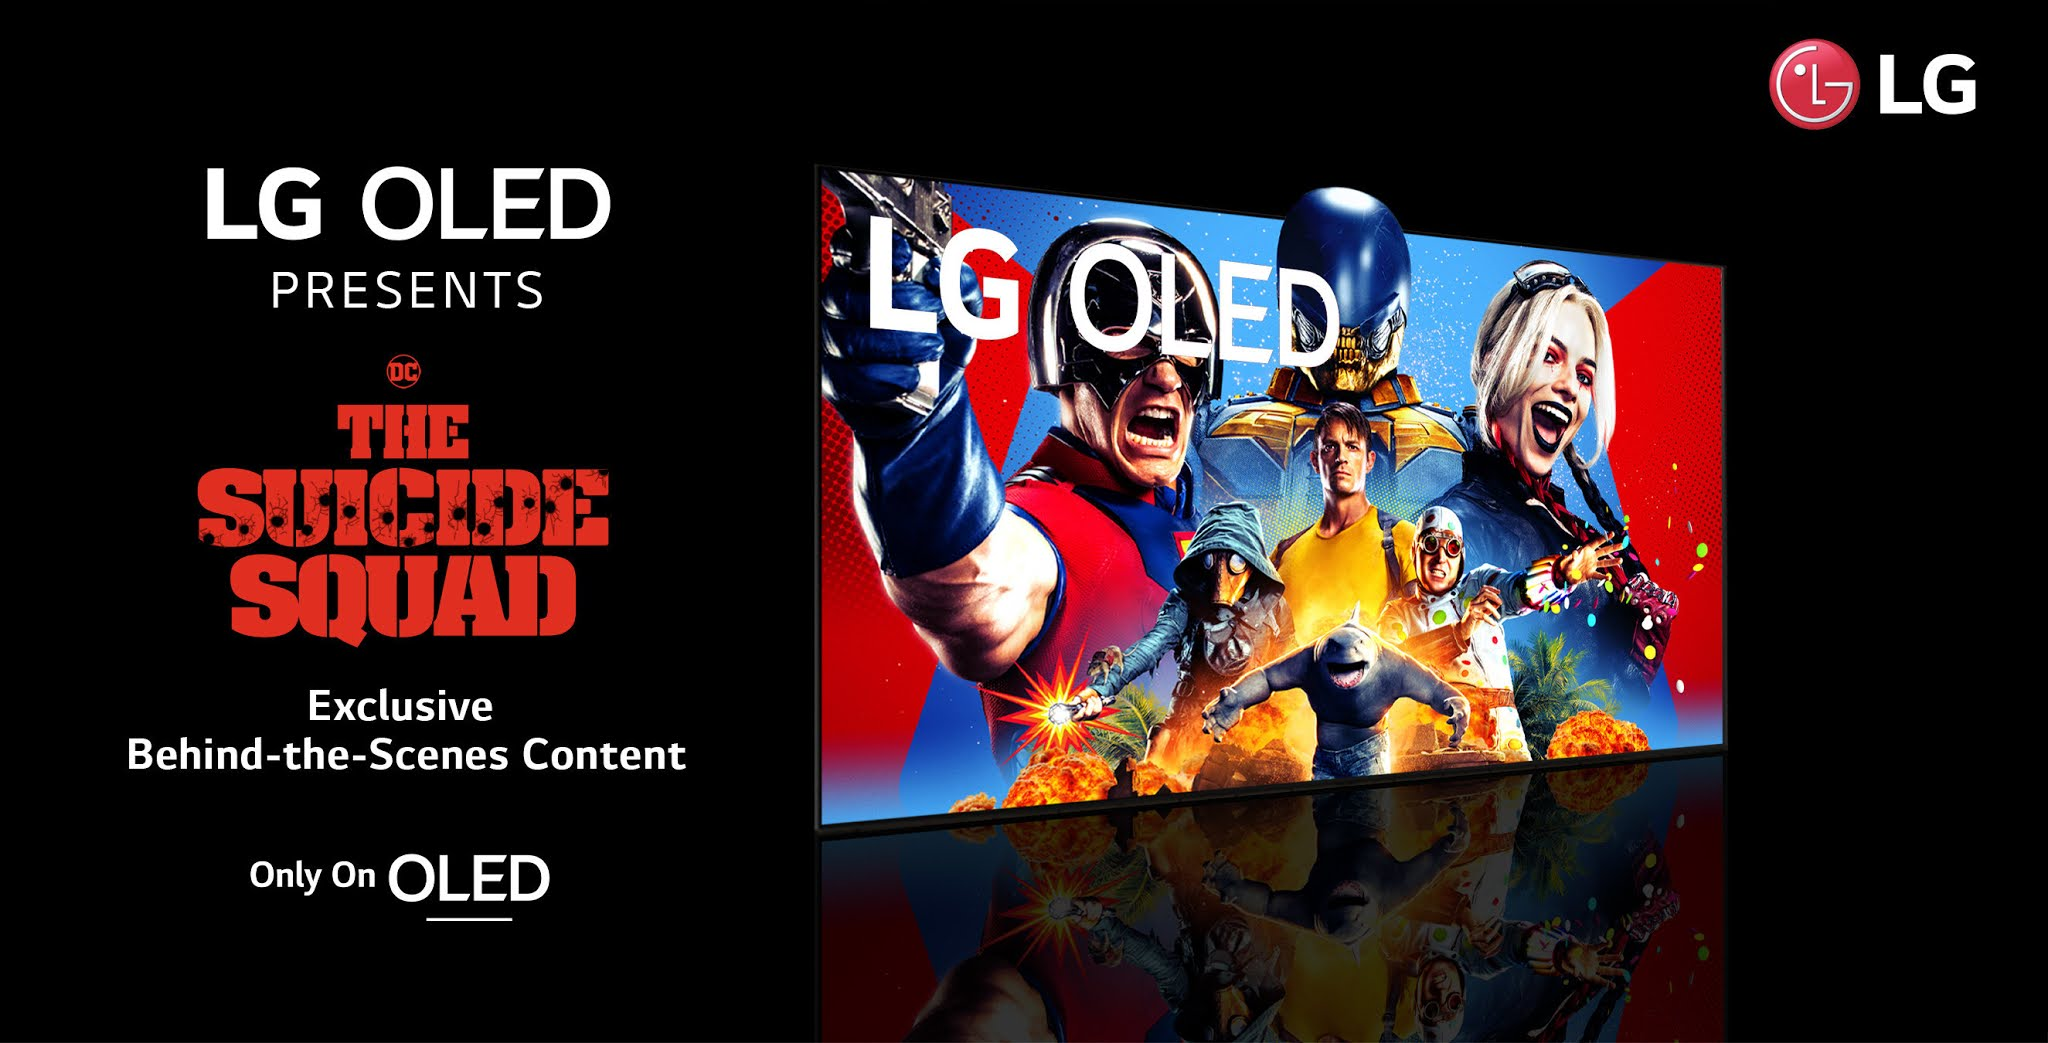 LG Teams Up With All-New Film The Suicide Squad To Bring Behind-The-Scenes Content To Fans As Part Of The Only On OLED Program